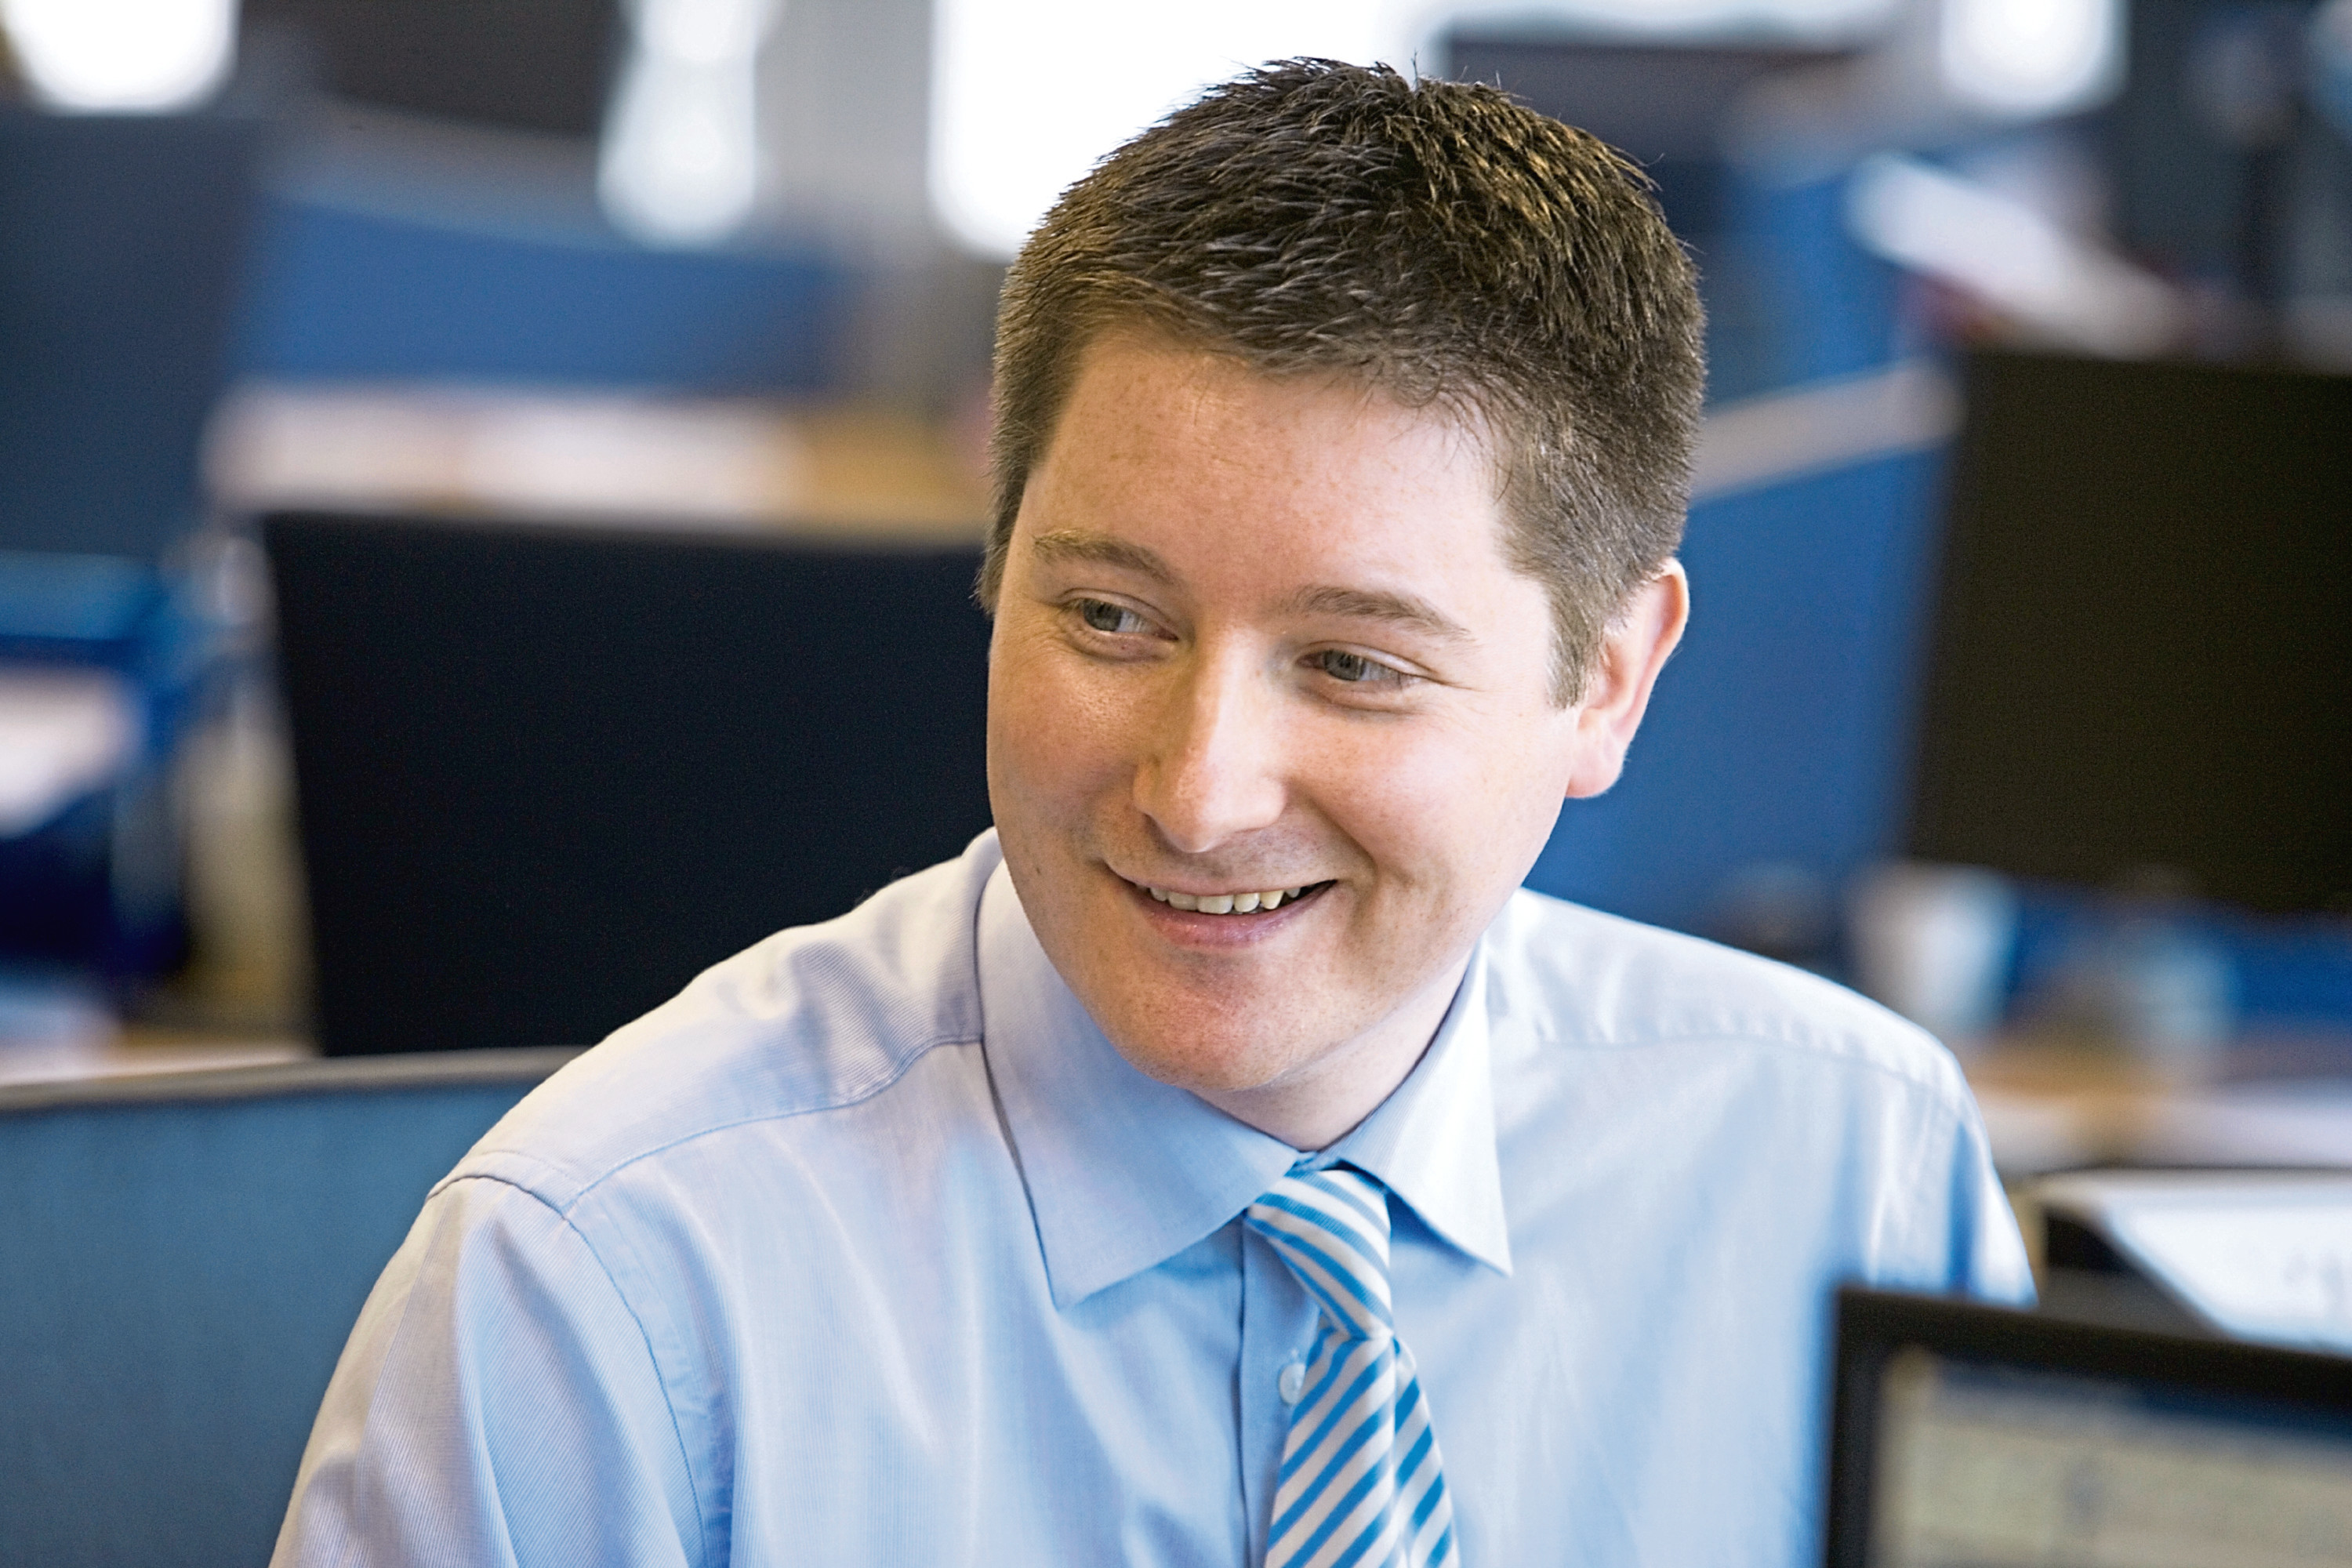 If you want to take things a step further why not arrange a meeting with David Barclay at our Aberdeen office for a chat?